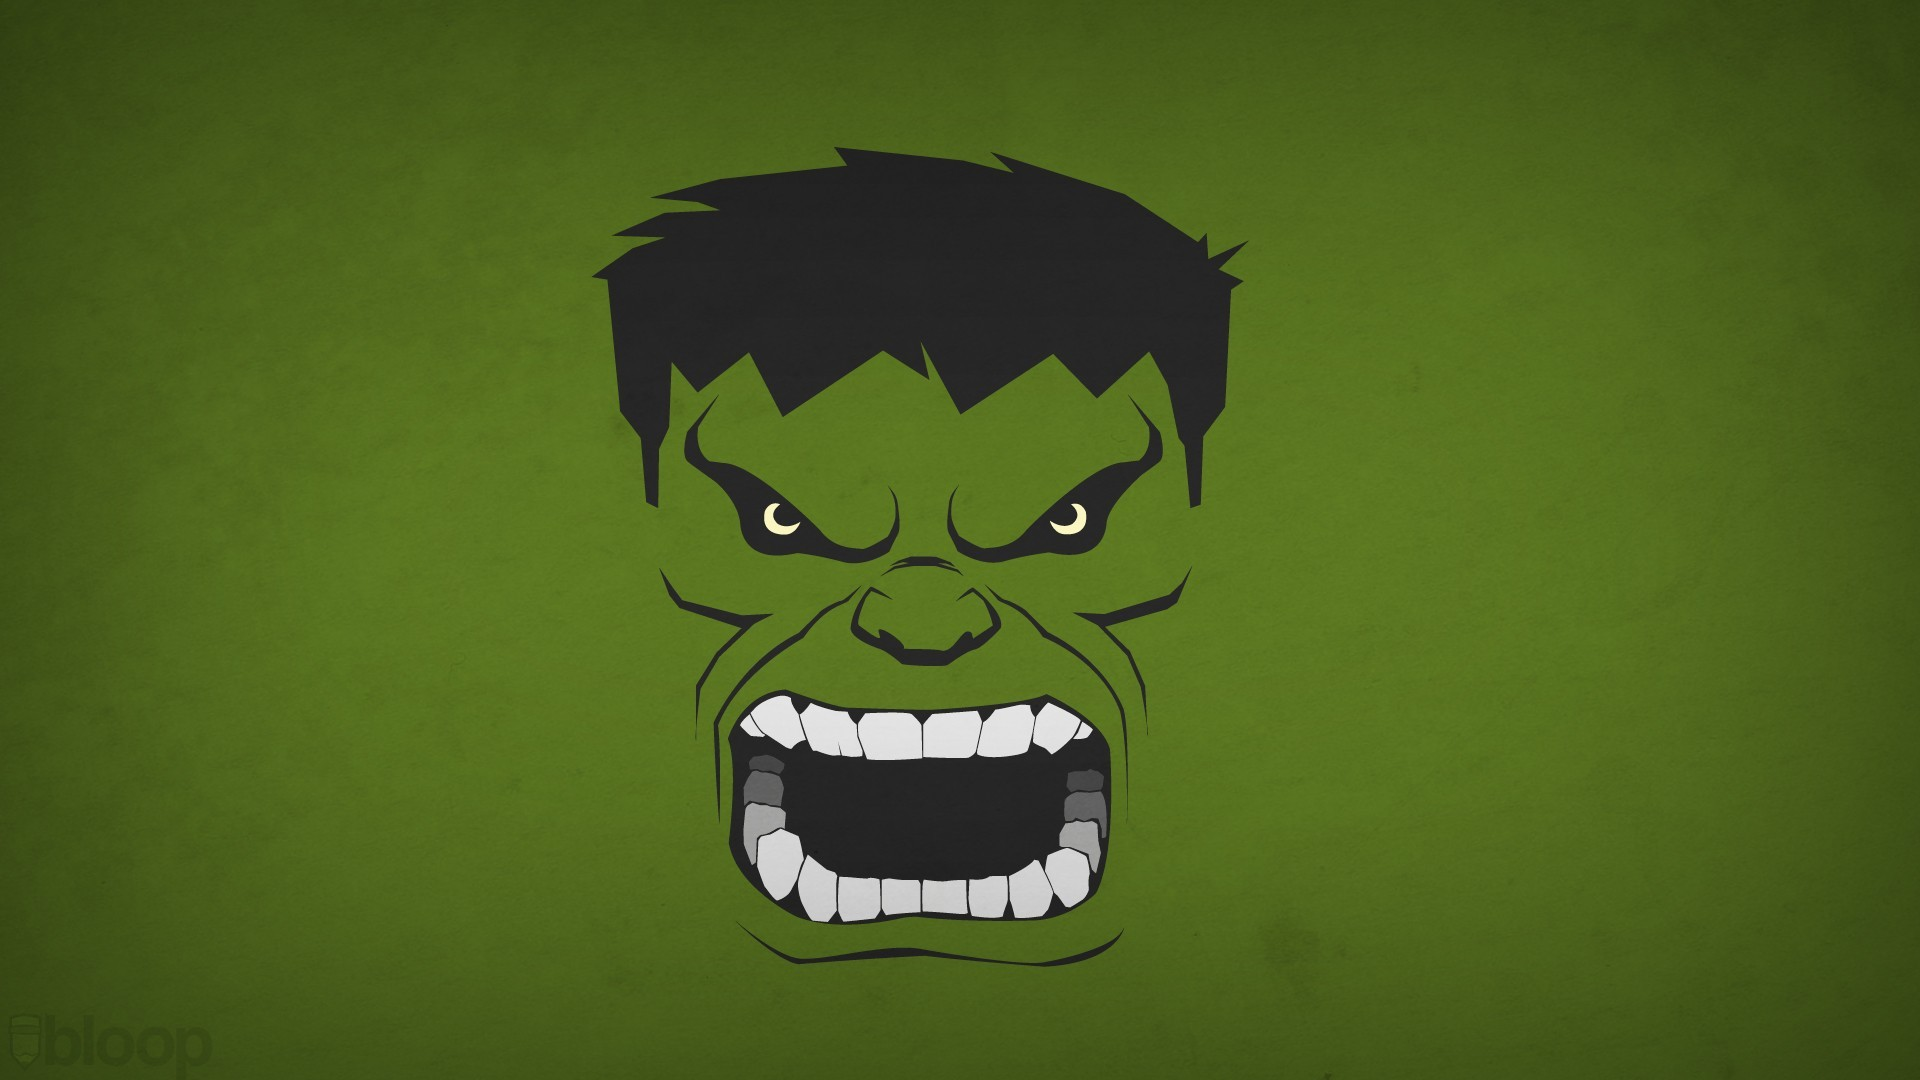 Hulk Logo Drawing at GetDrawings.com | Free for personal use Hulk ...